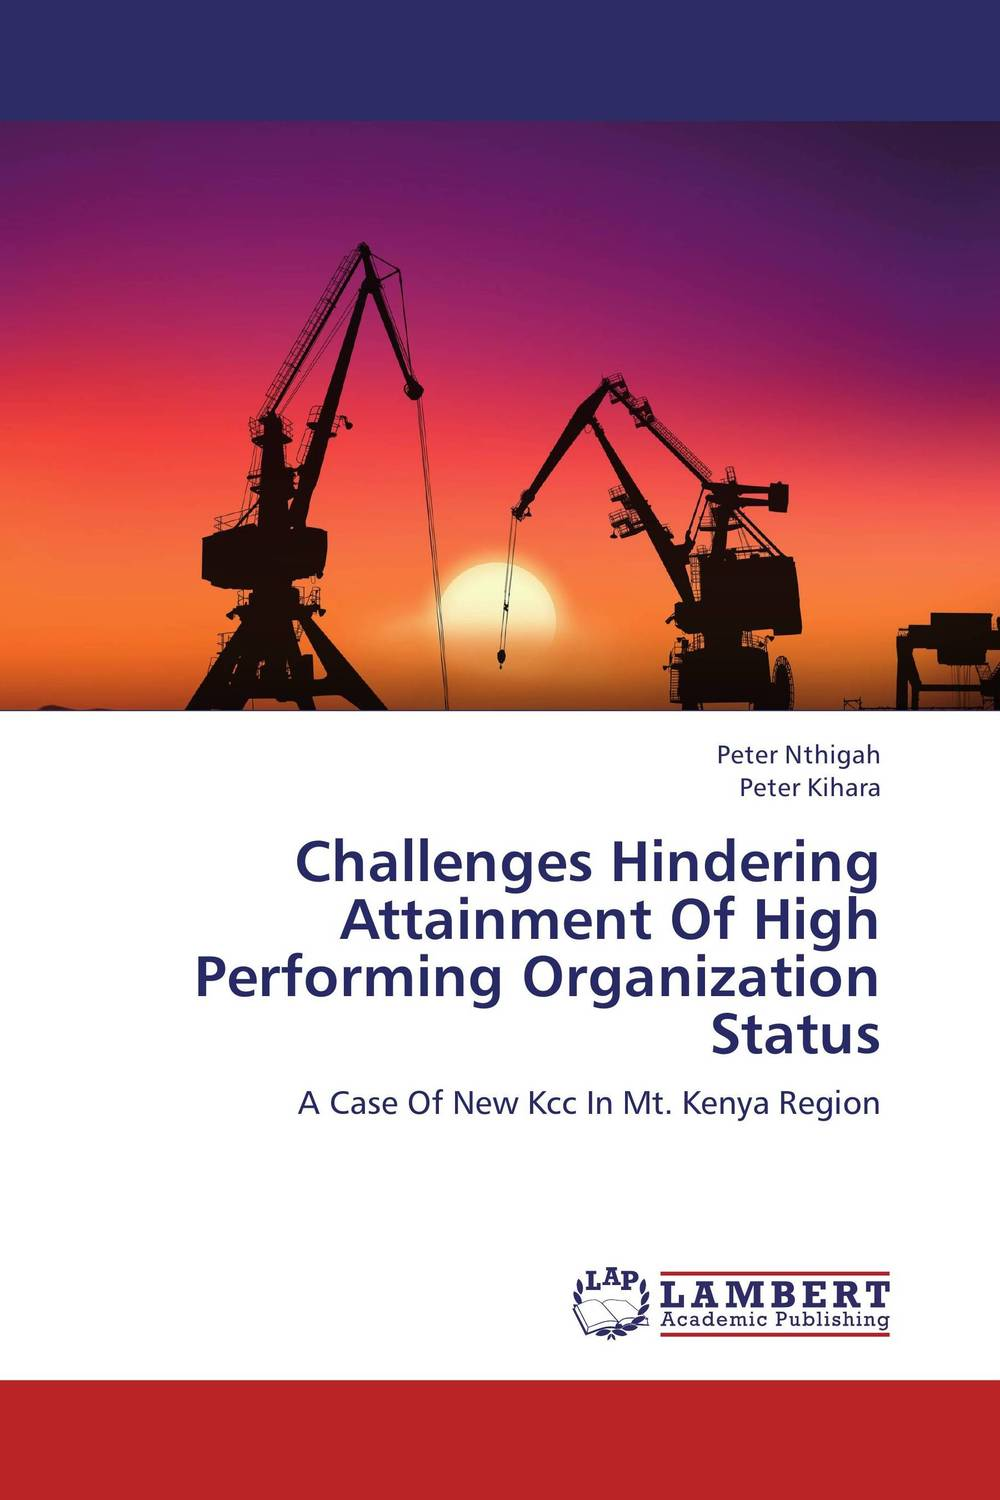 Challenges Hindering Attainment Of High Performing Organization Status hinder hinder welcome to the freakshow